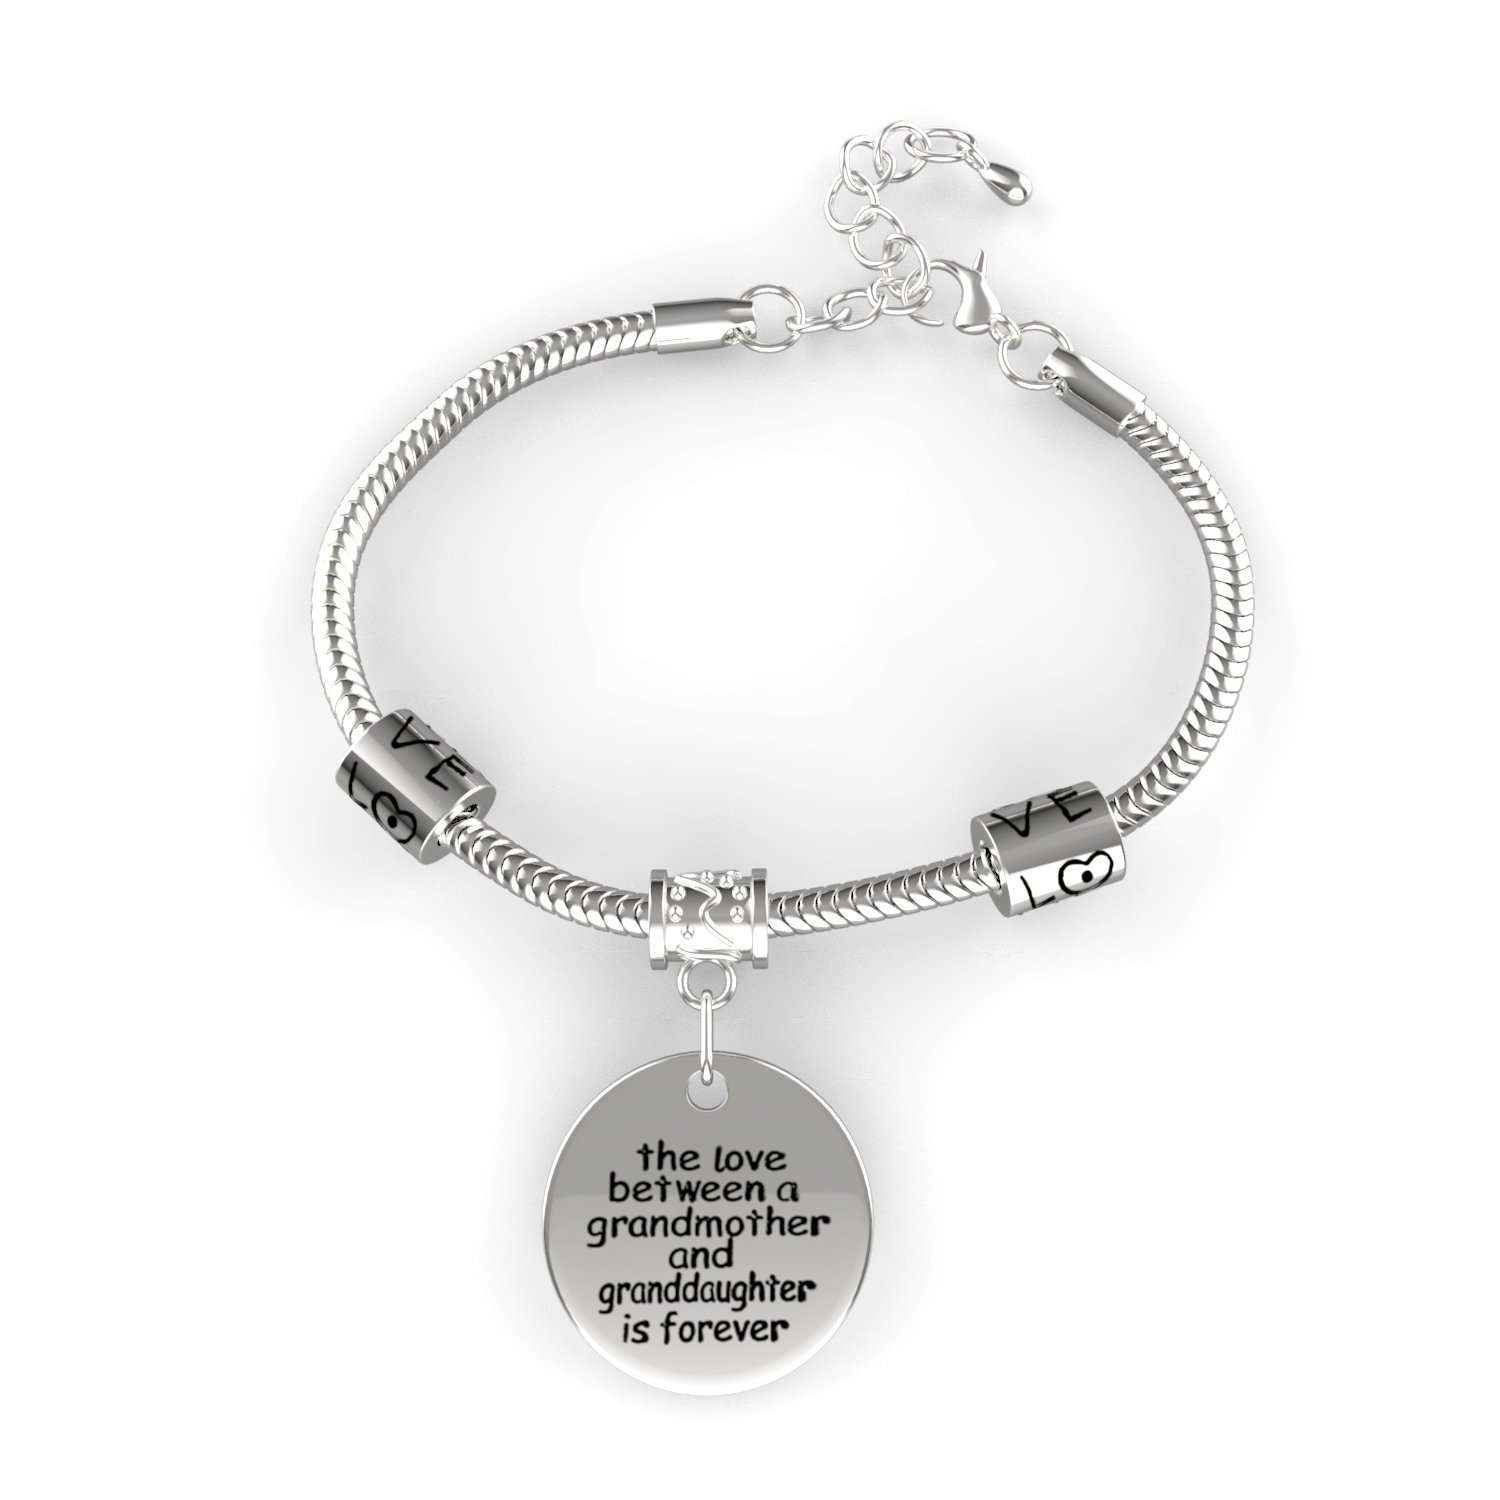 a9cf0c14f Amazon.com: Love Between a Grandmother and Granddaughter is Forever Bracelet  - Family Jewelry Gift - 10'': Jewelry